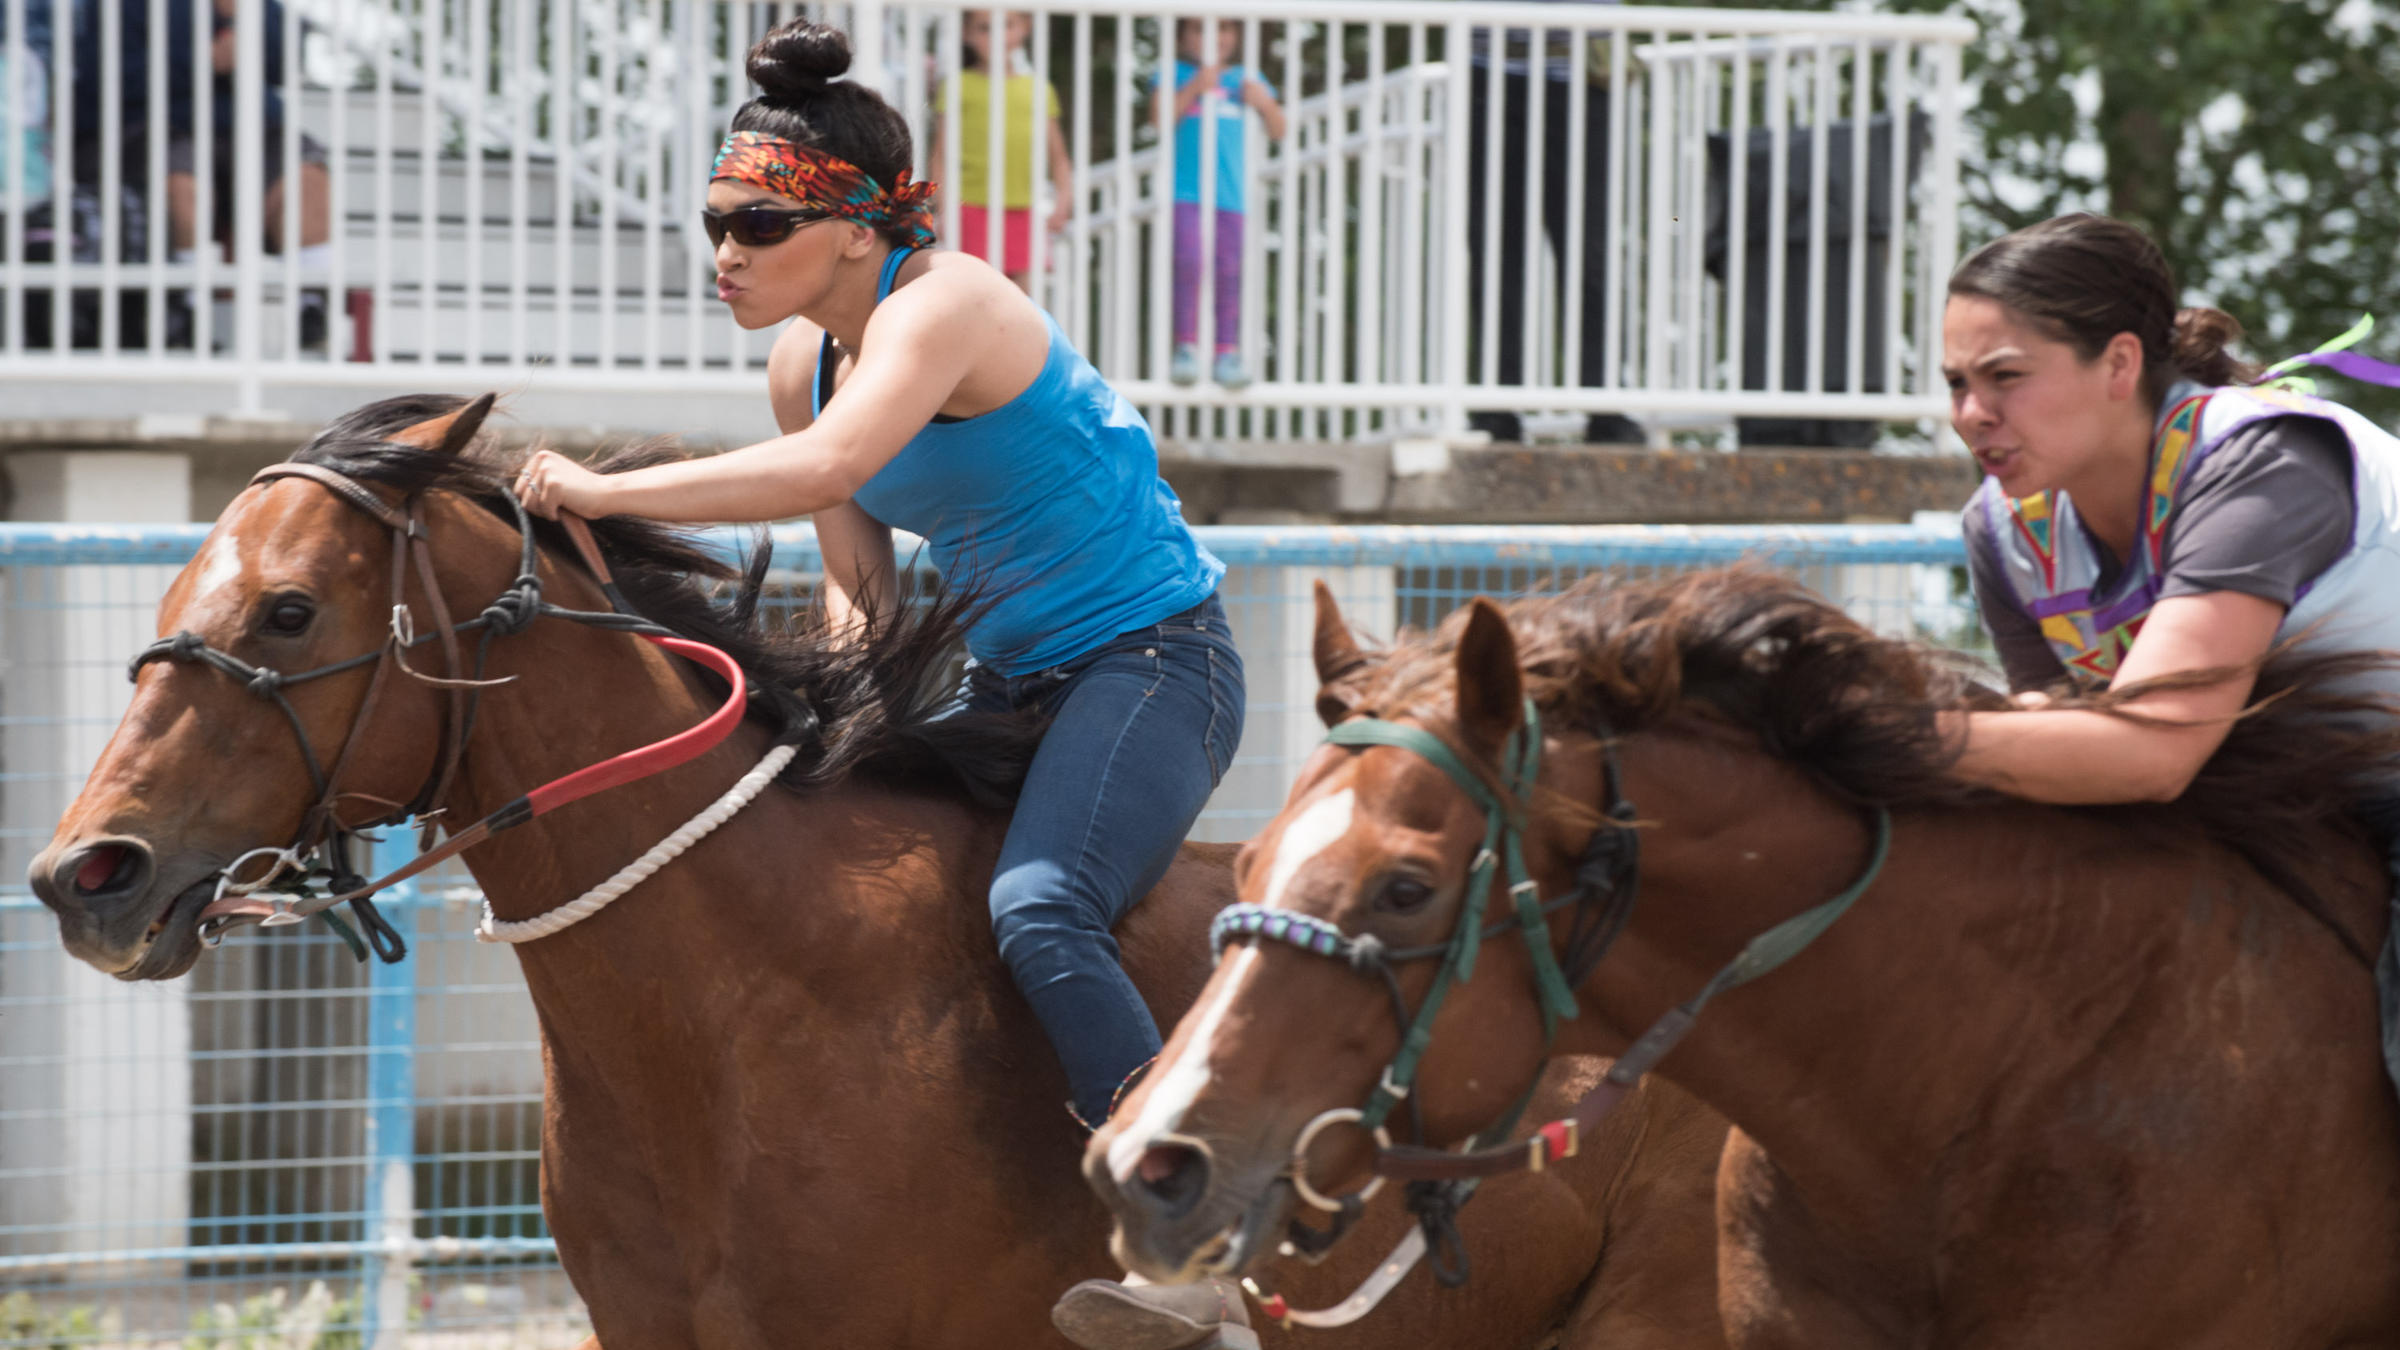 Indian Relay Celebrates History And Culture Through Horse Racing Npr